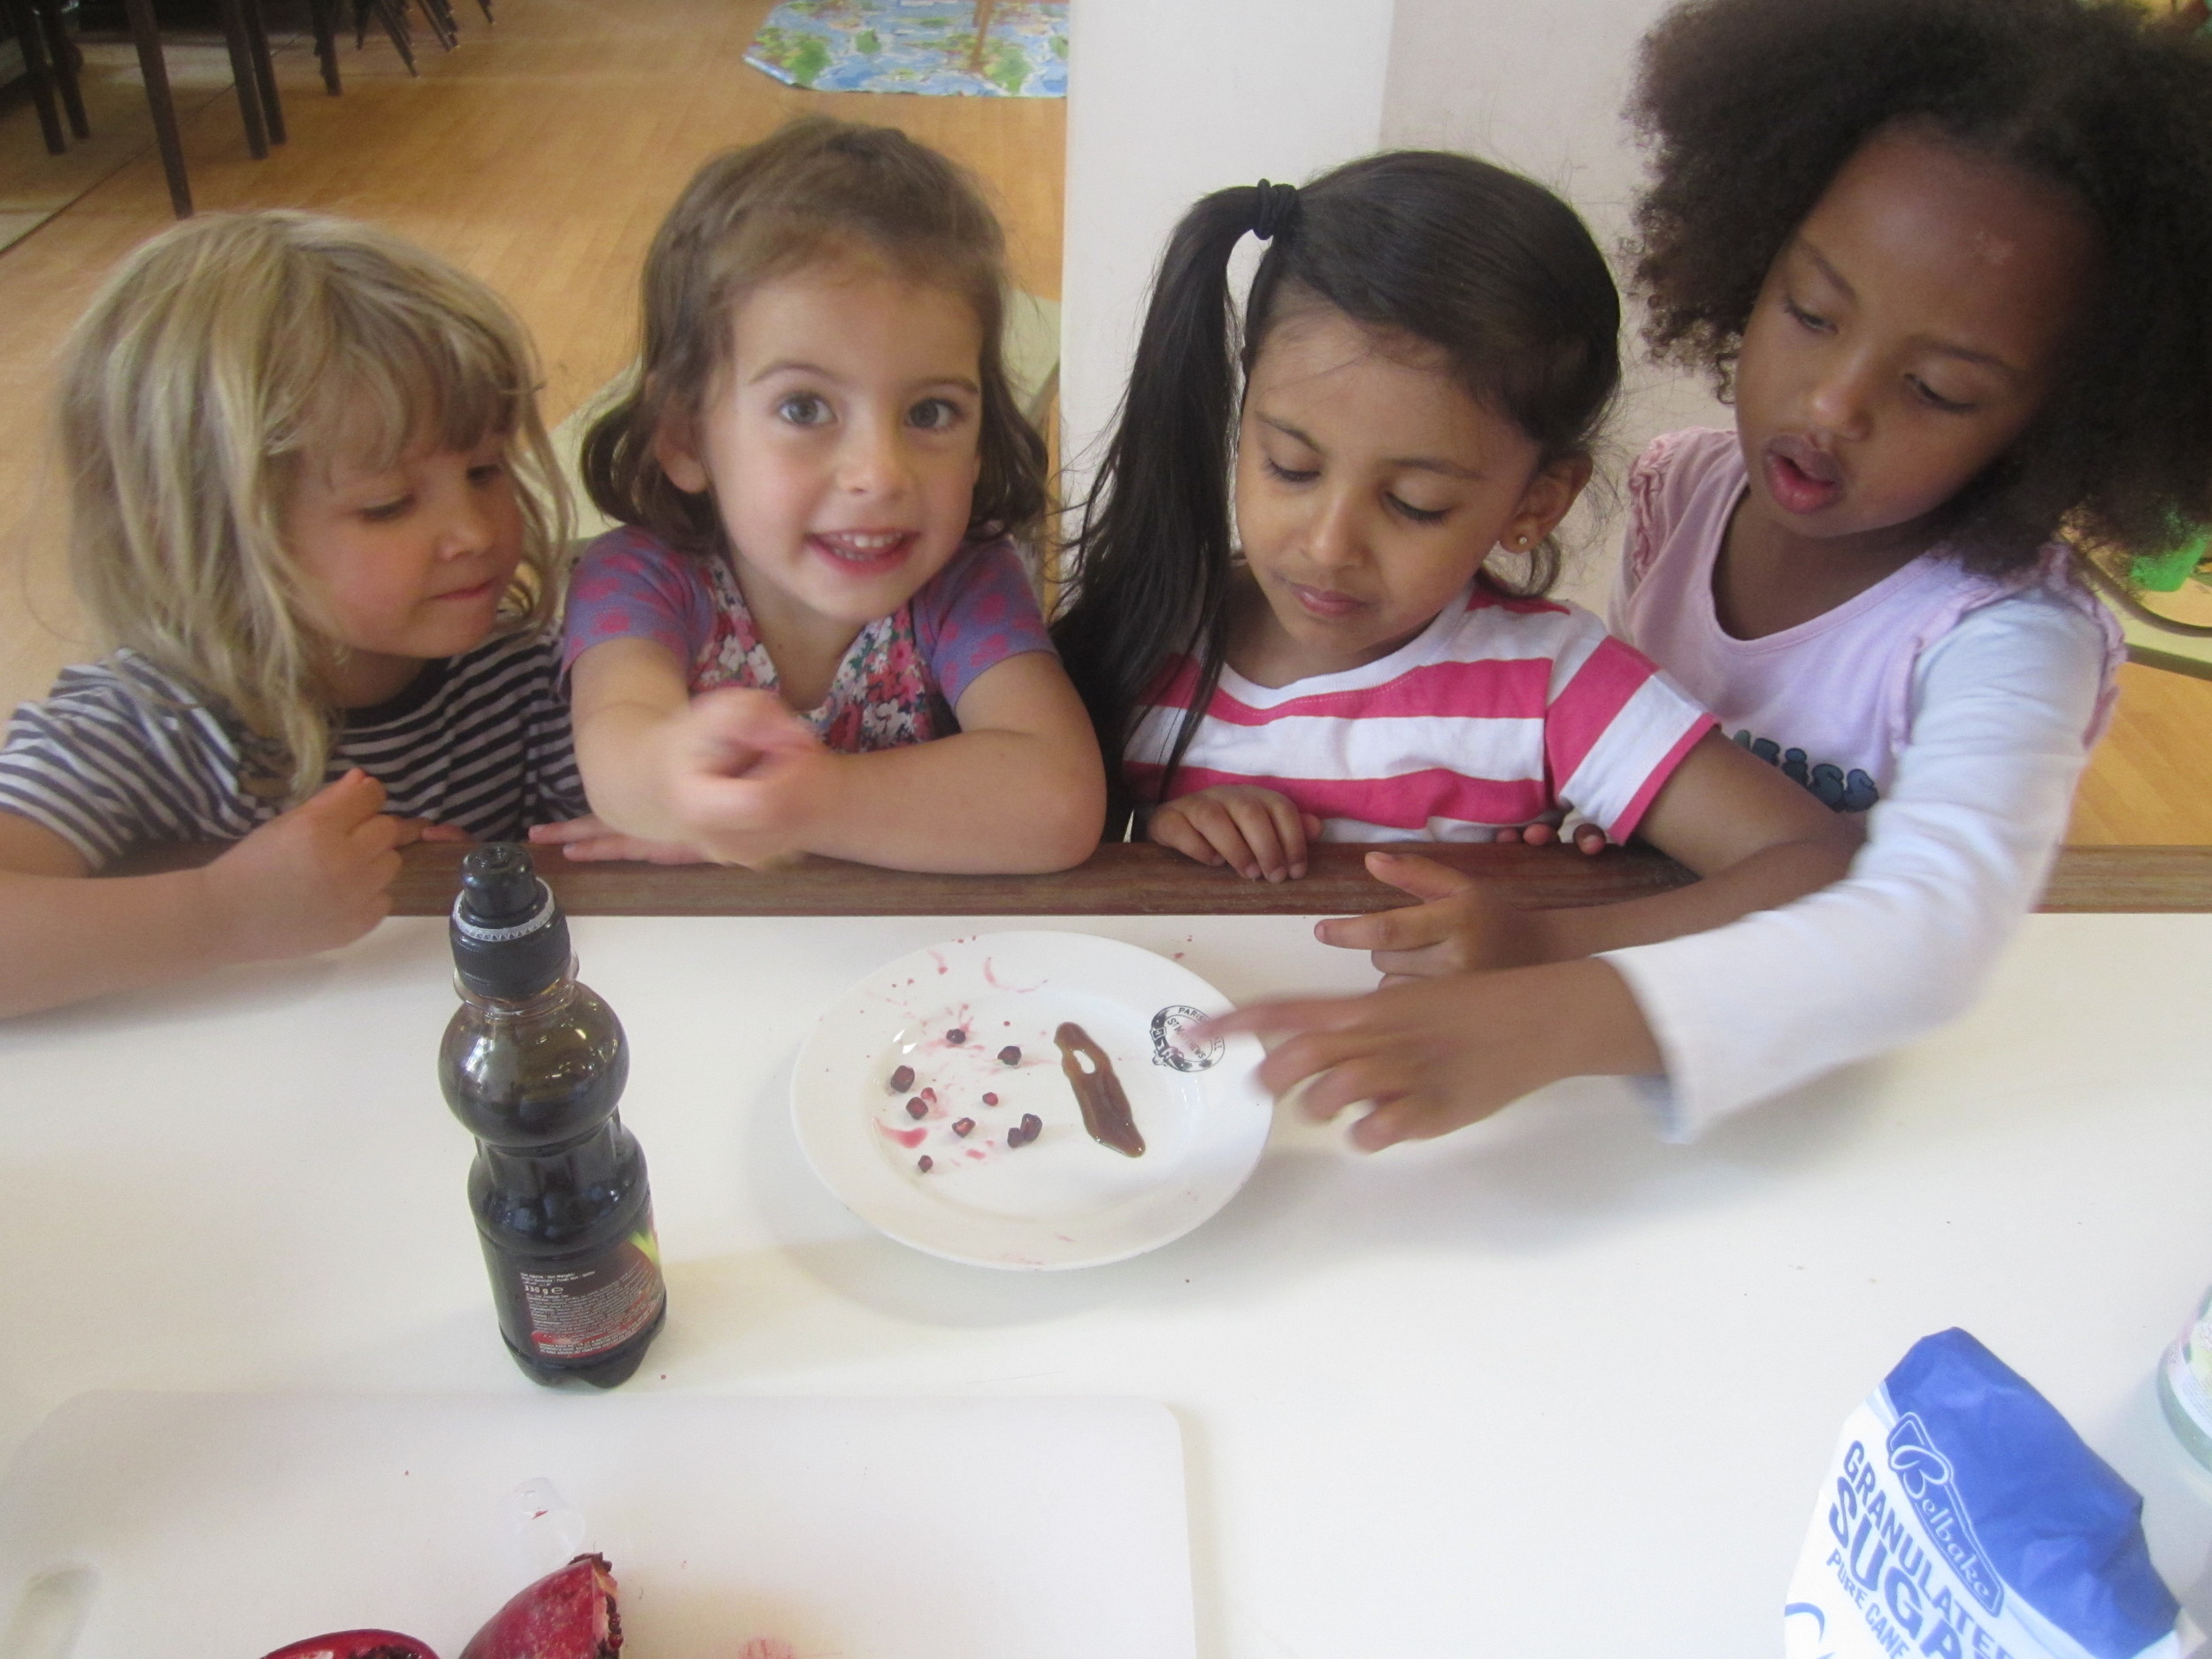 Play school cookery session - Ivy and friends.